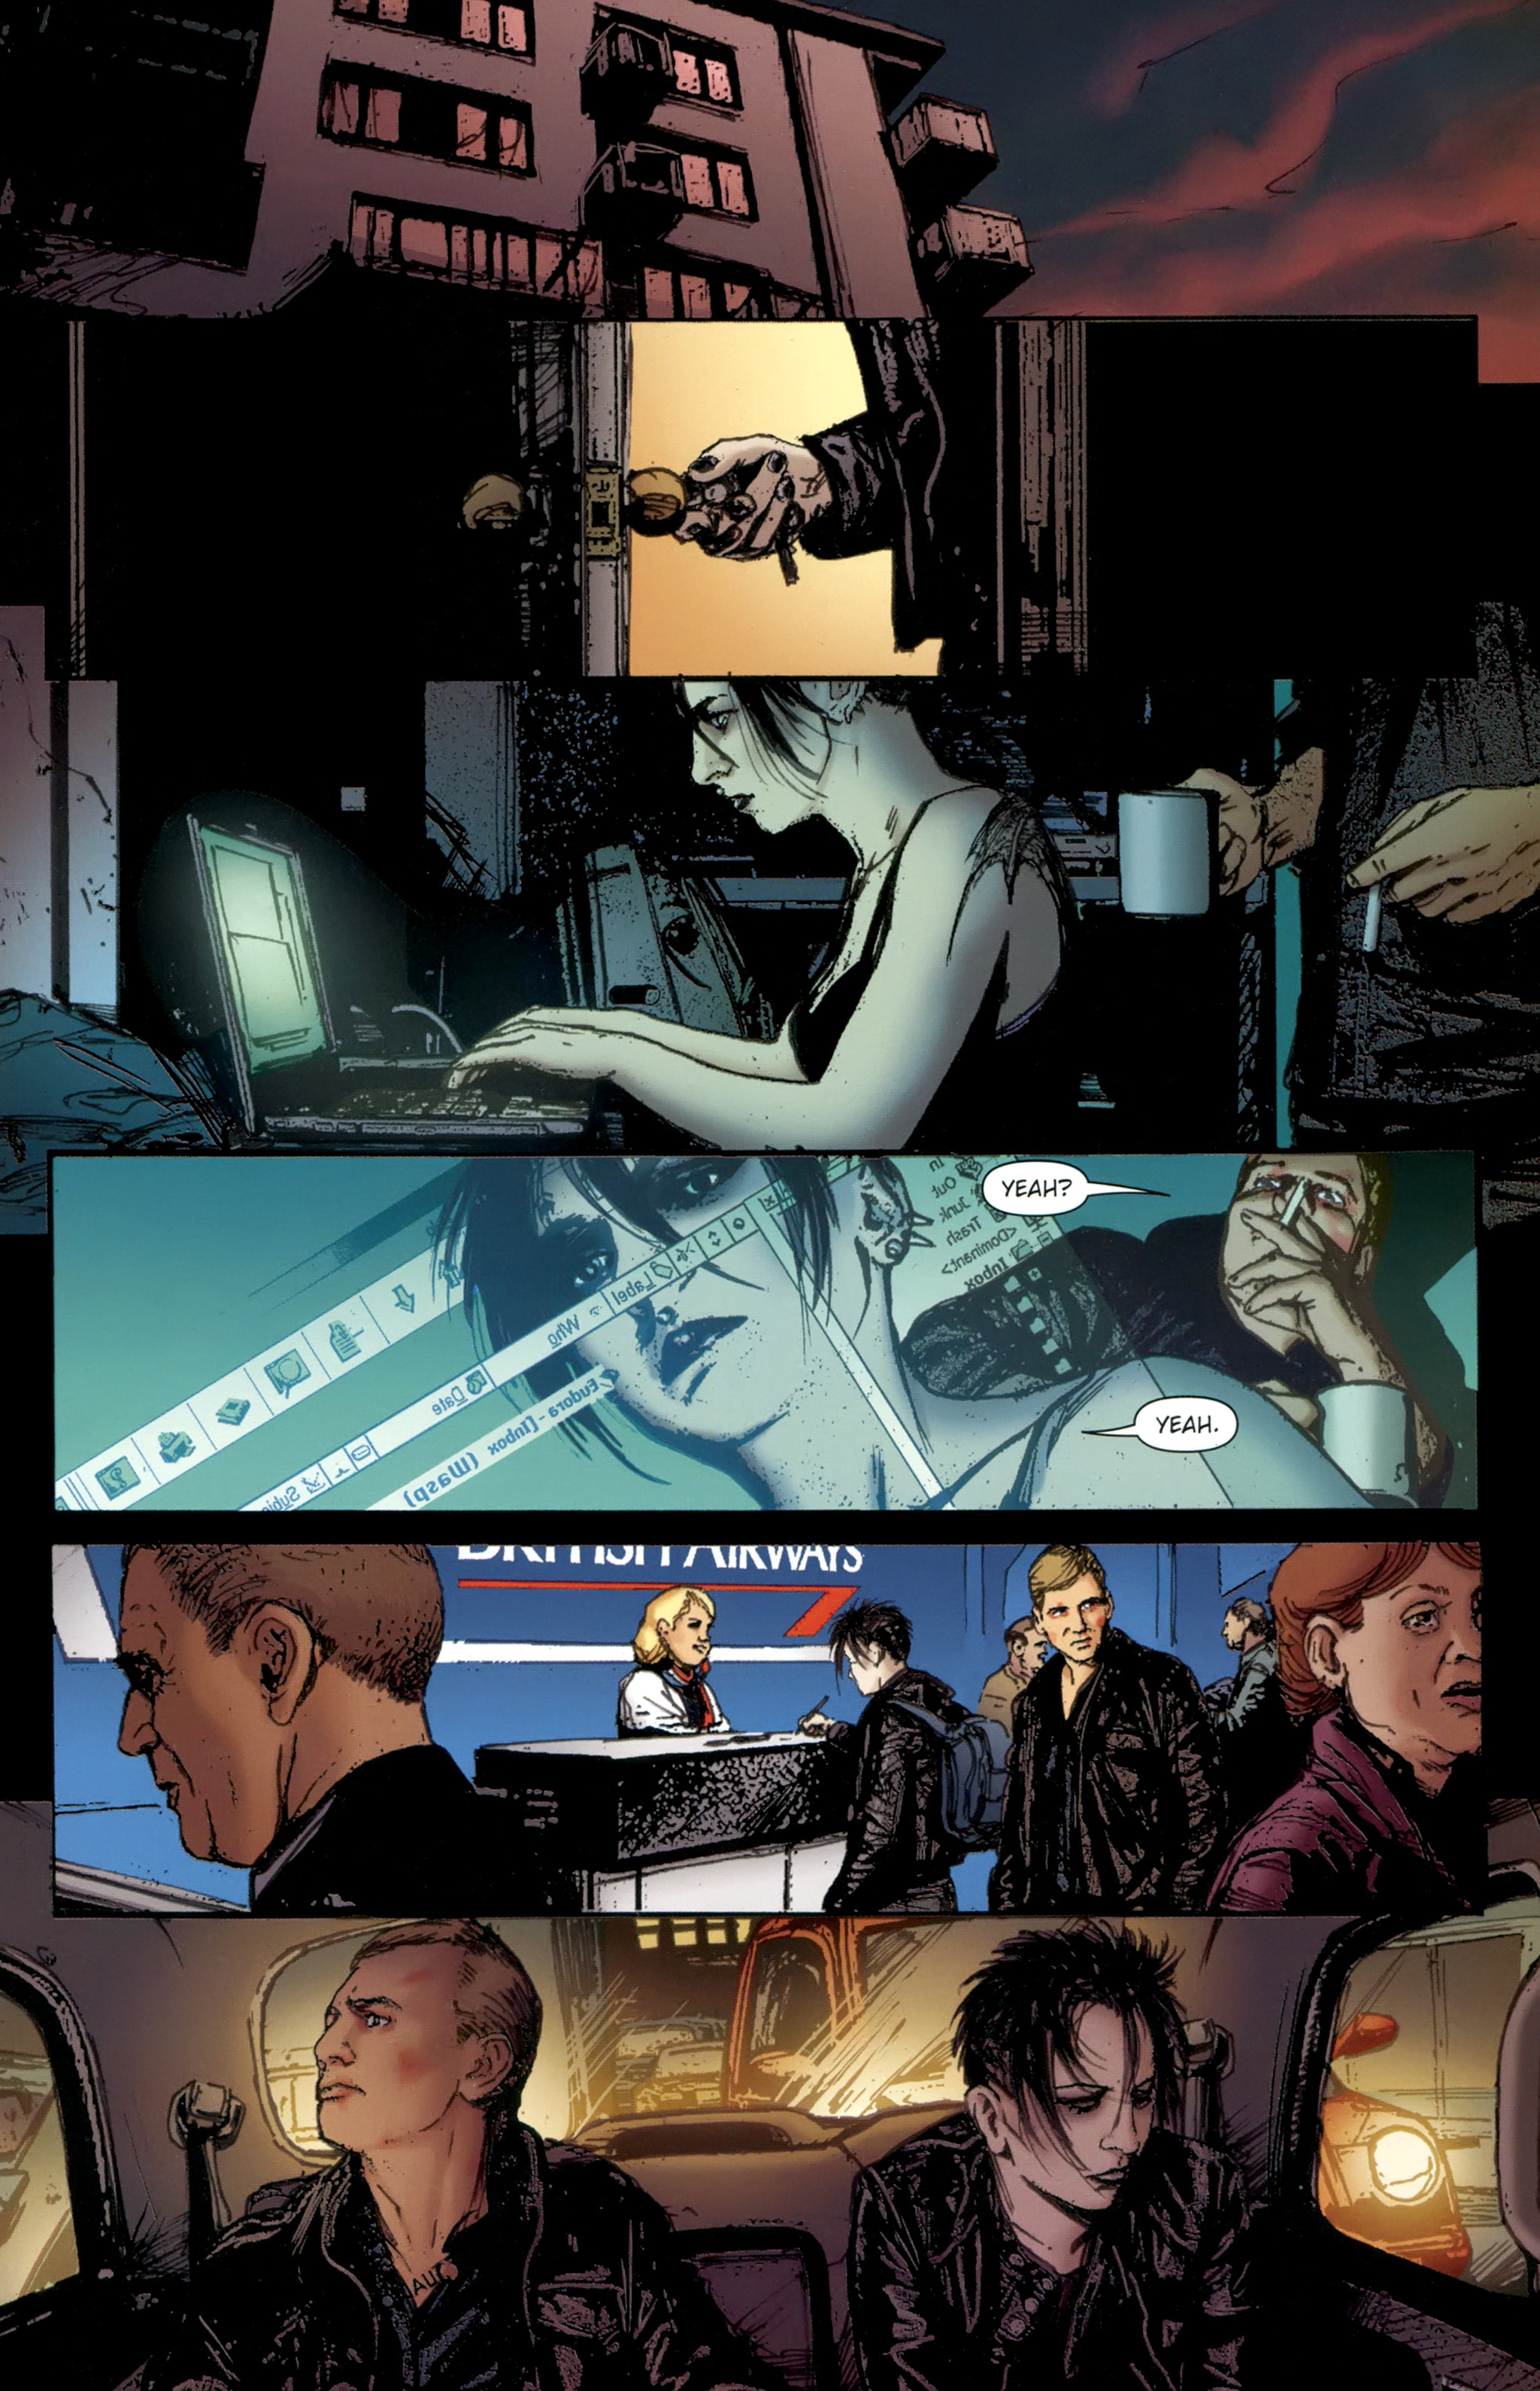 Read online The Girl With the Dragon Tattoo comic -  Issue # TPB 2 - 123